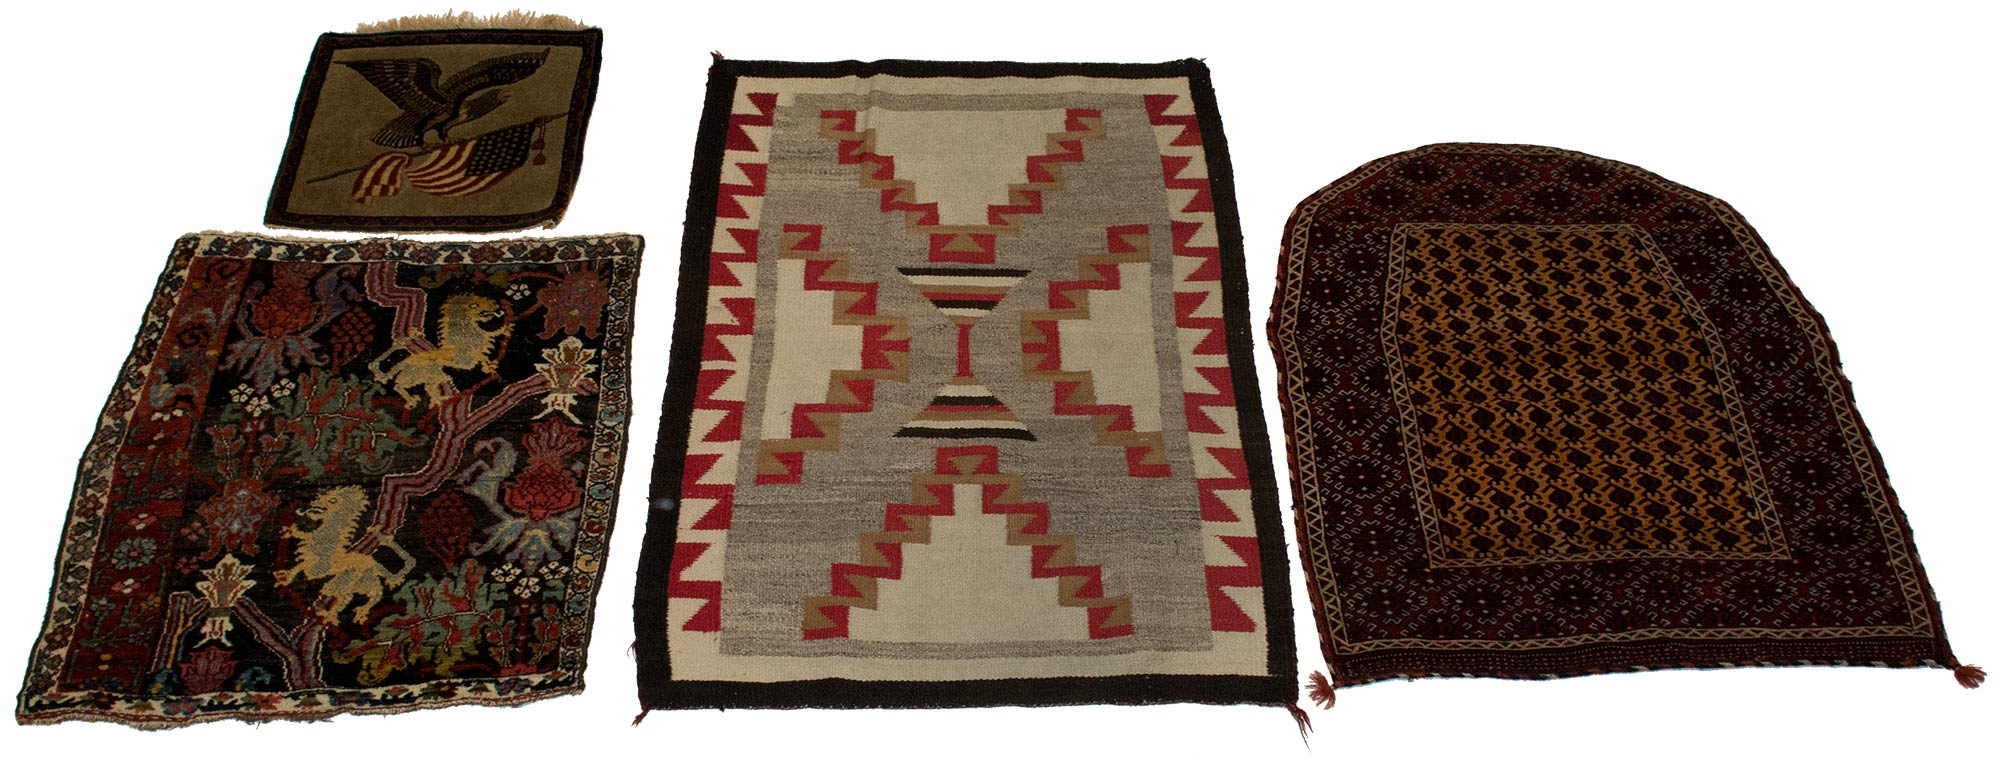 Lot image - Four Assorted Rugs